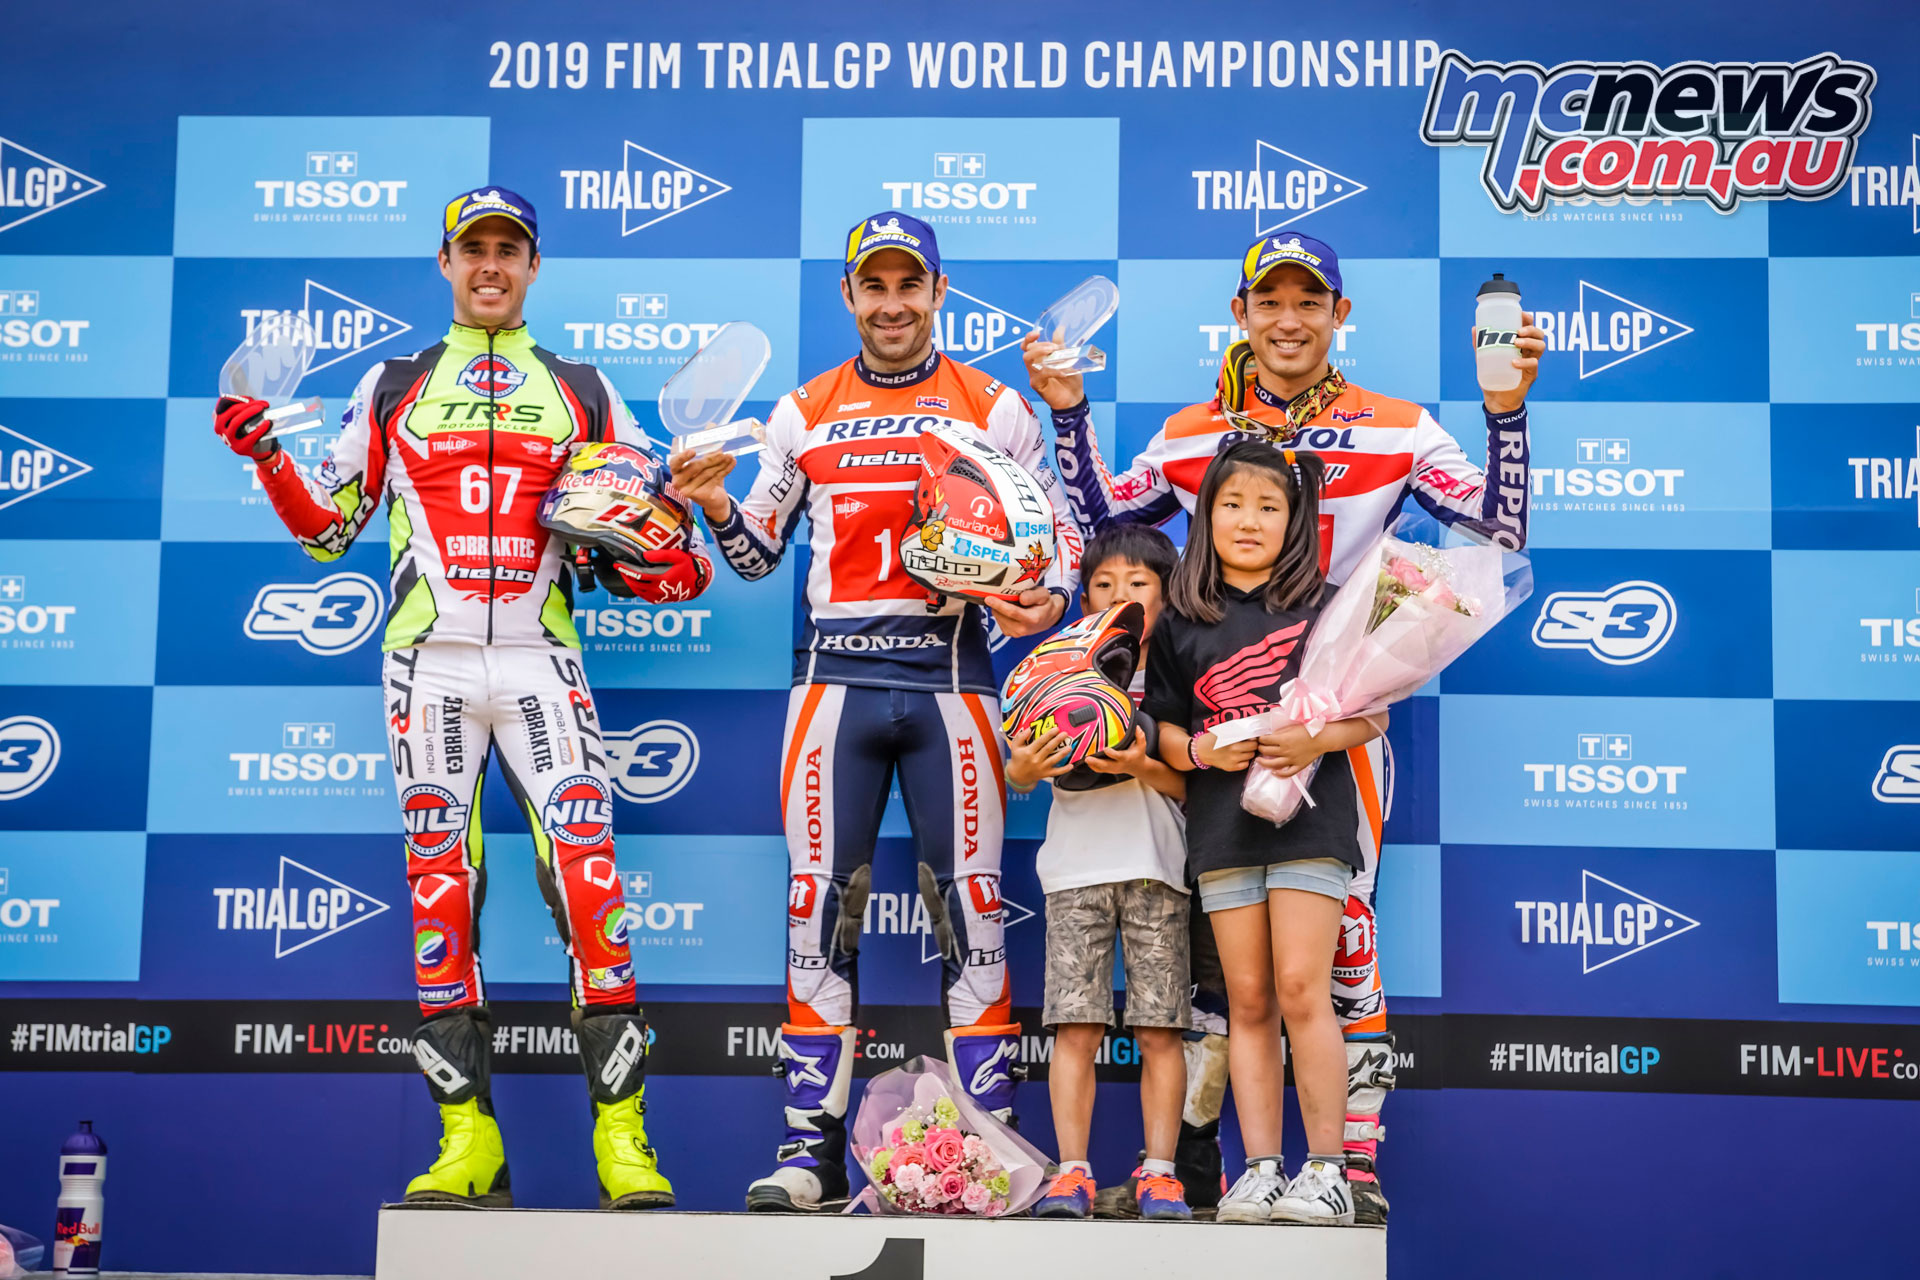 TrialGP R Podium TrialGP ps